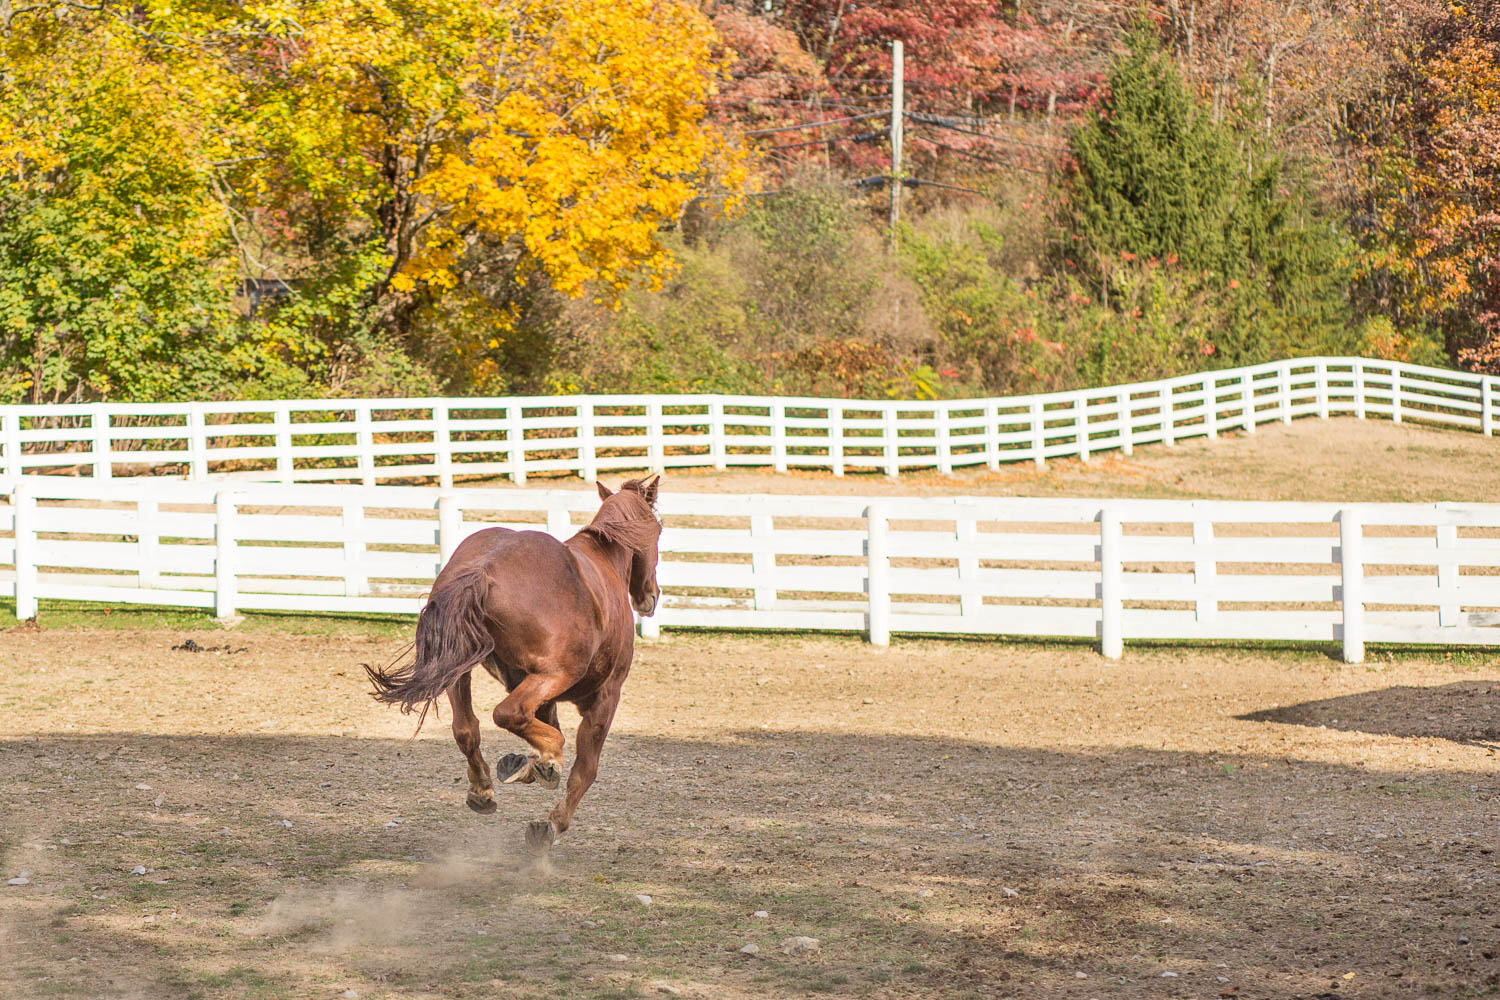 Horse photography at stables at the greenbrier west virginia